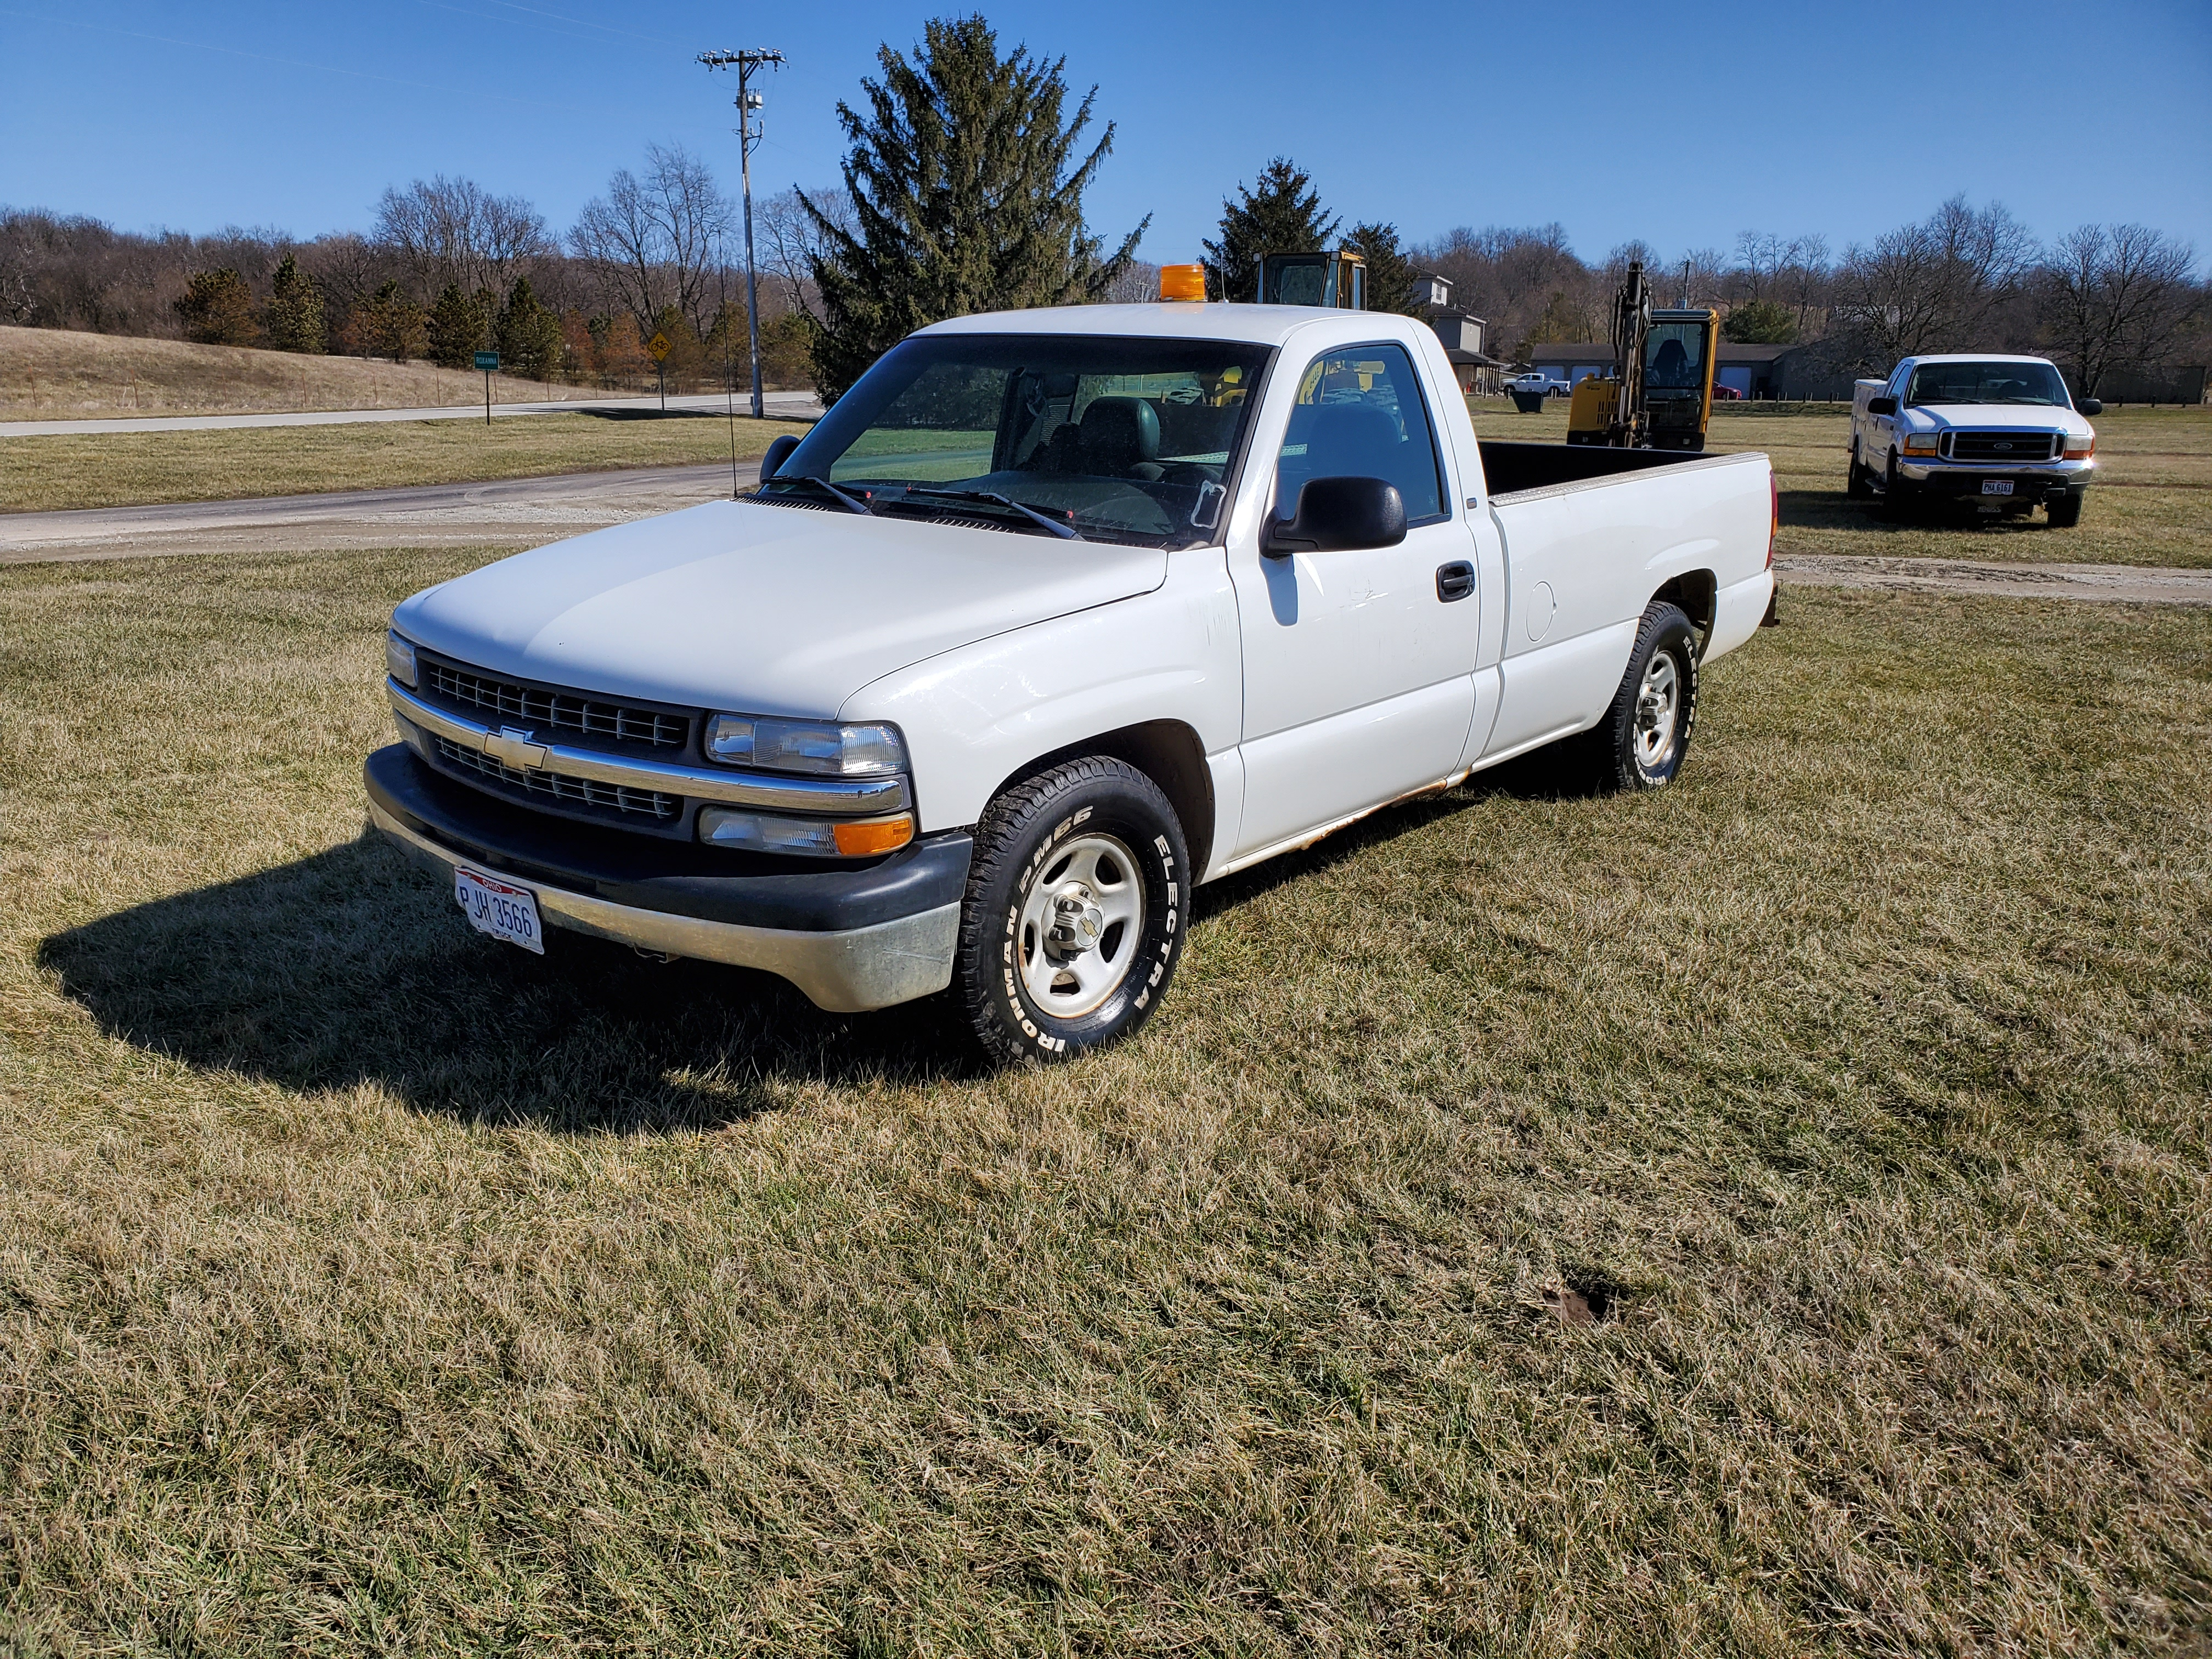 2001 Chevrolet 1500 Silverado 1500, 8 ft. Bed, 4.3 Liter Gasoline Engine, Automatic, 137,712 Miles - Image 2 of 17